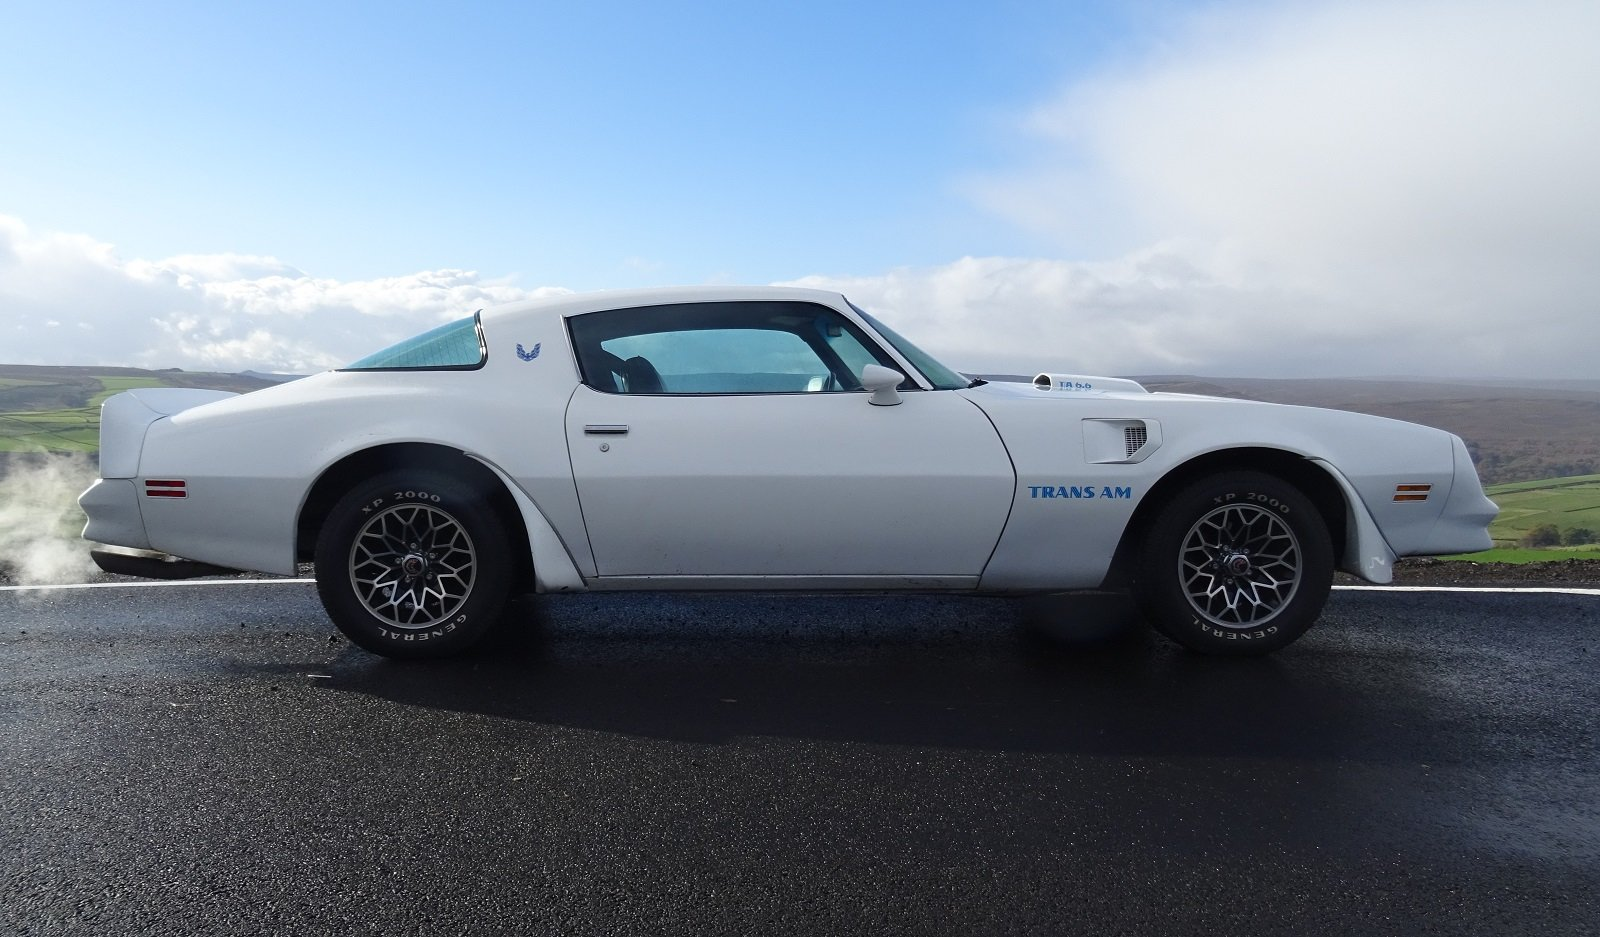 1978 STUNNING FIREBIRD TRANS AM 6.6 V8 POWERFUL ENGINE MUSCLE CAR For Sale (picture 3 of 6)